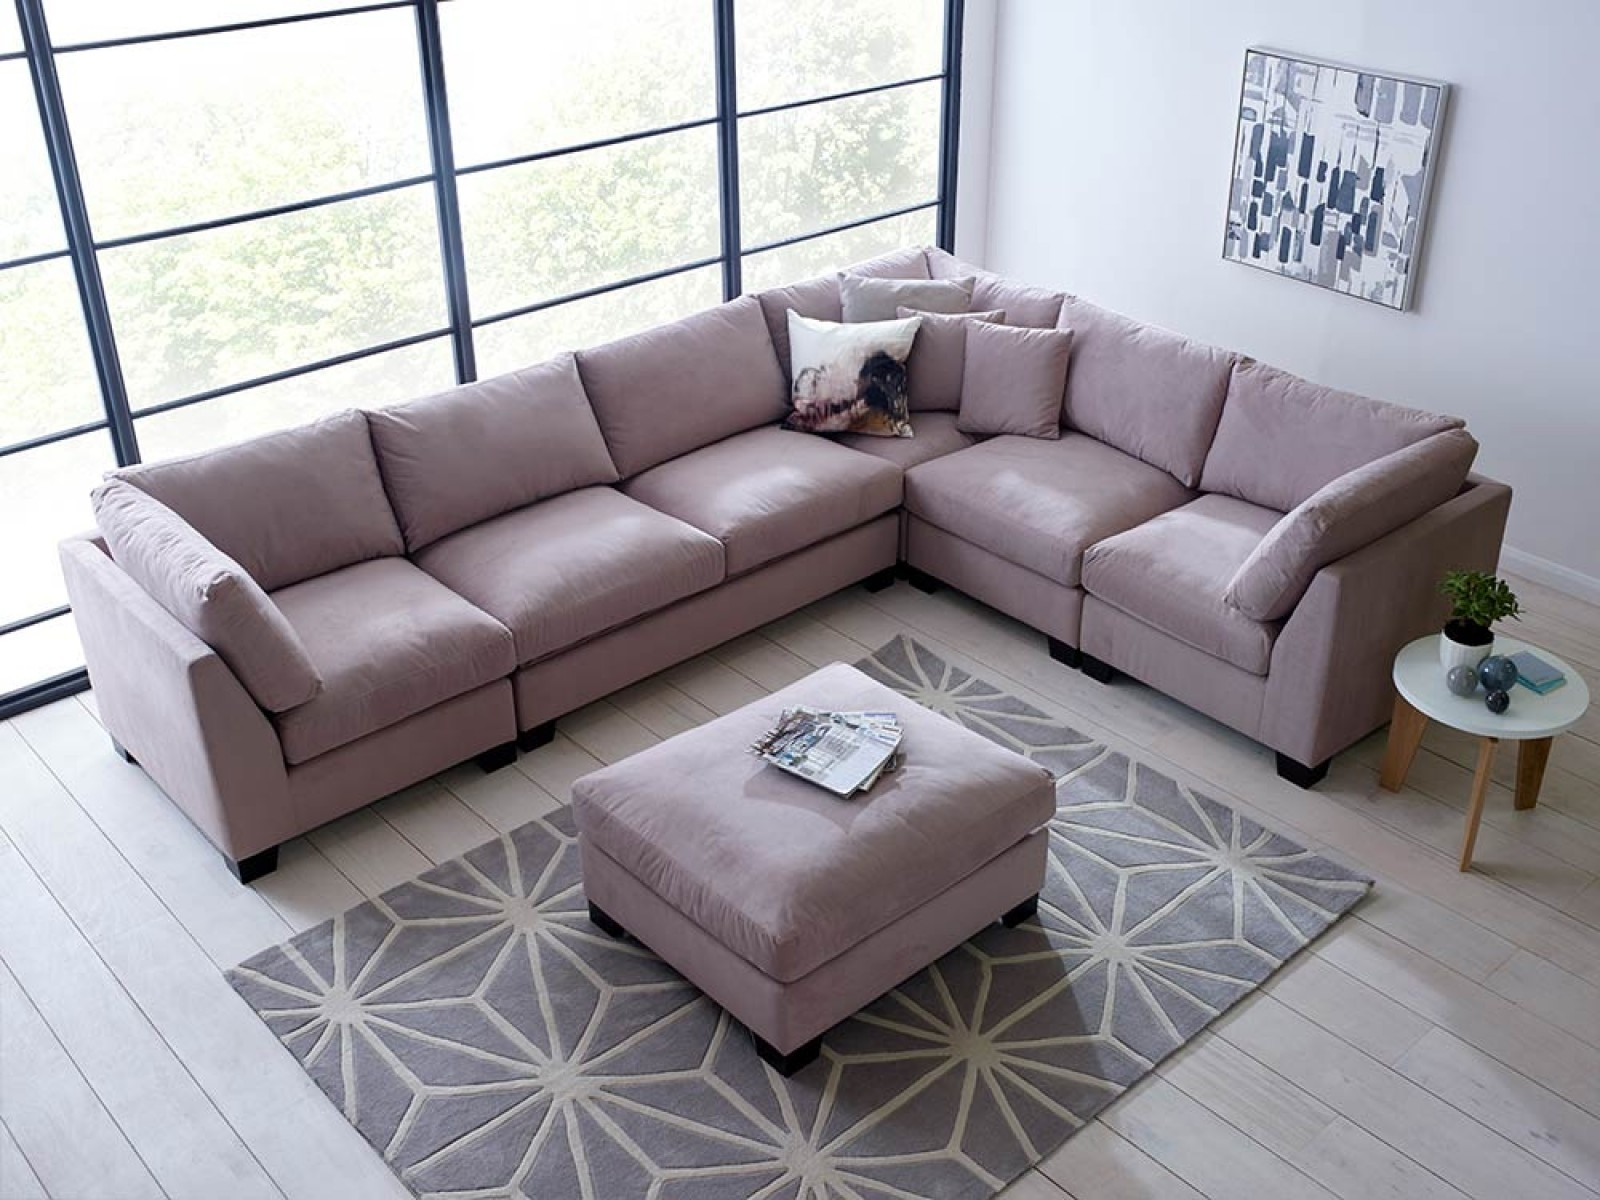 Modular Sofas, Sectional Sofas | Living It Up intended for Sectional Sofas That Can Be Rearranged (Image 6 of 10)